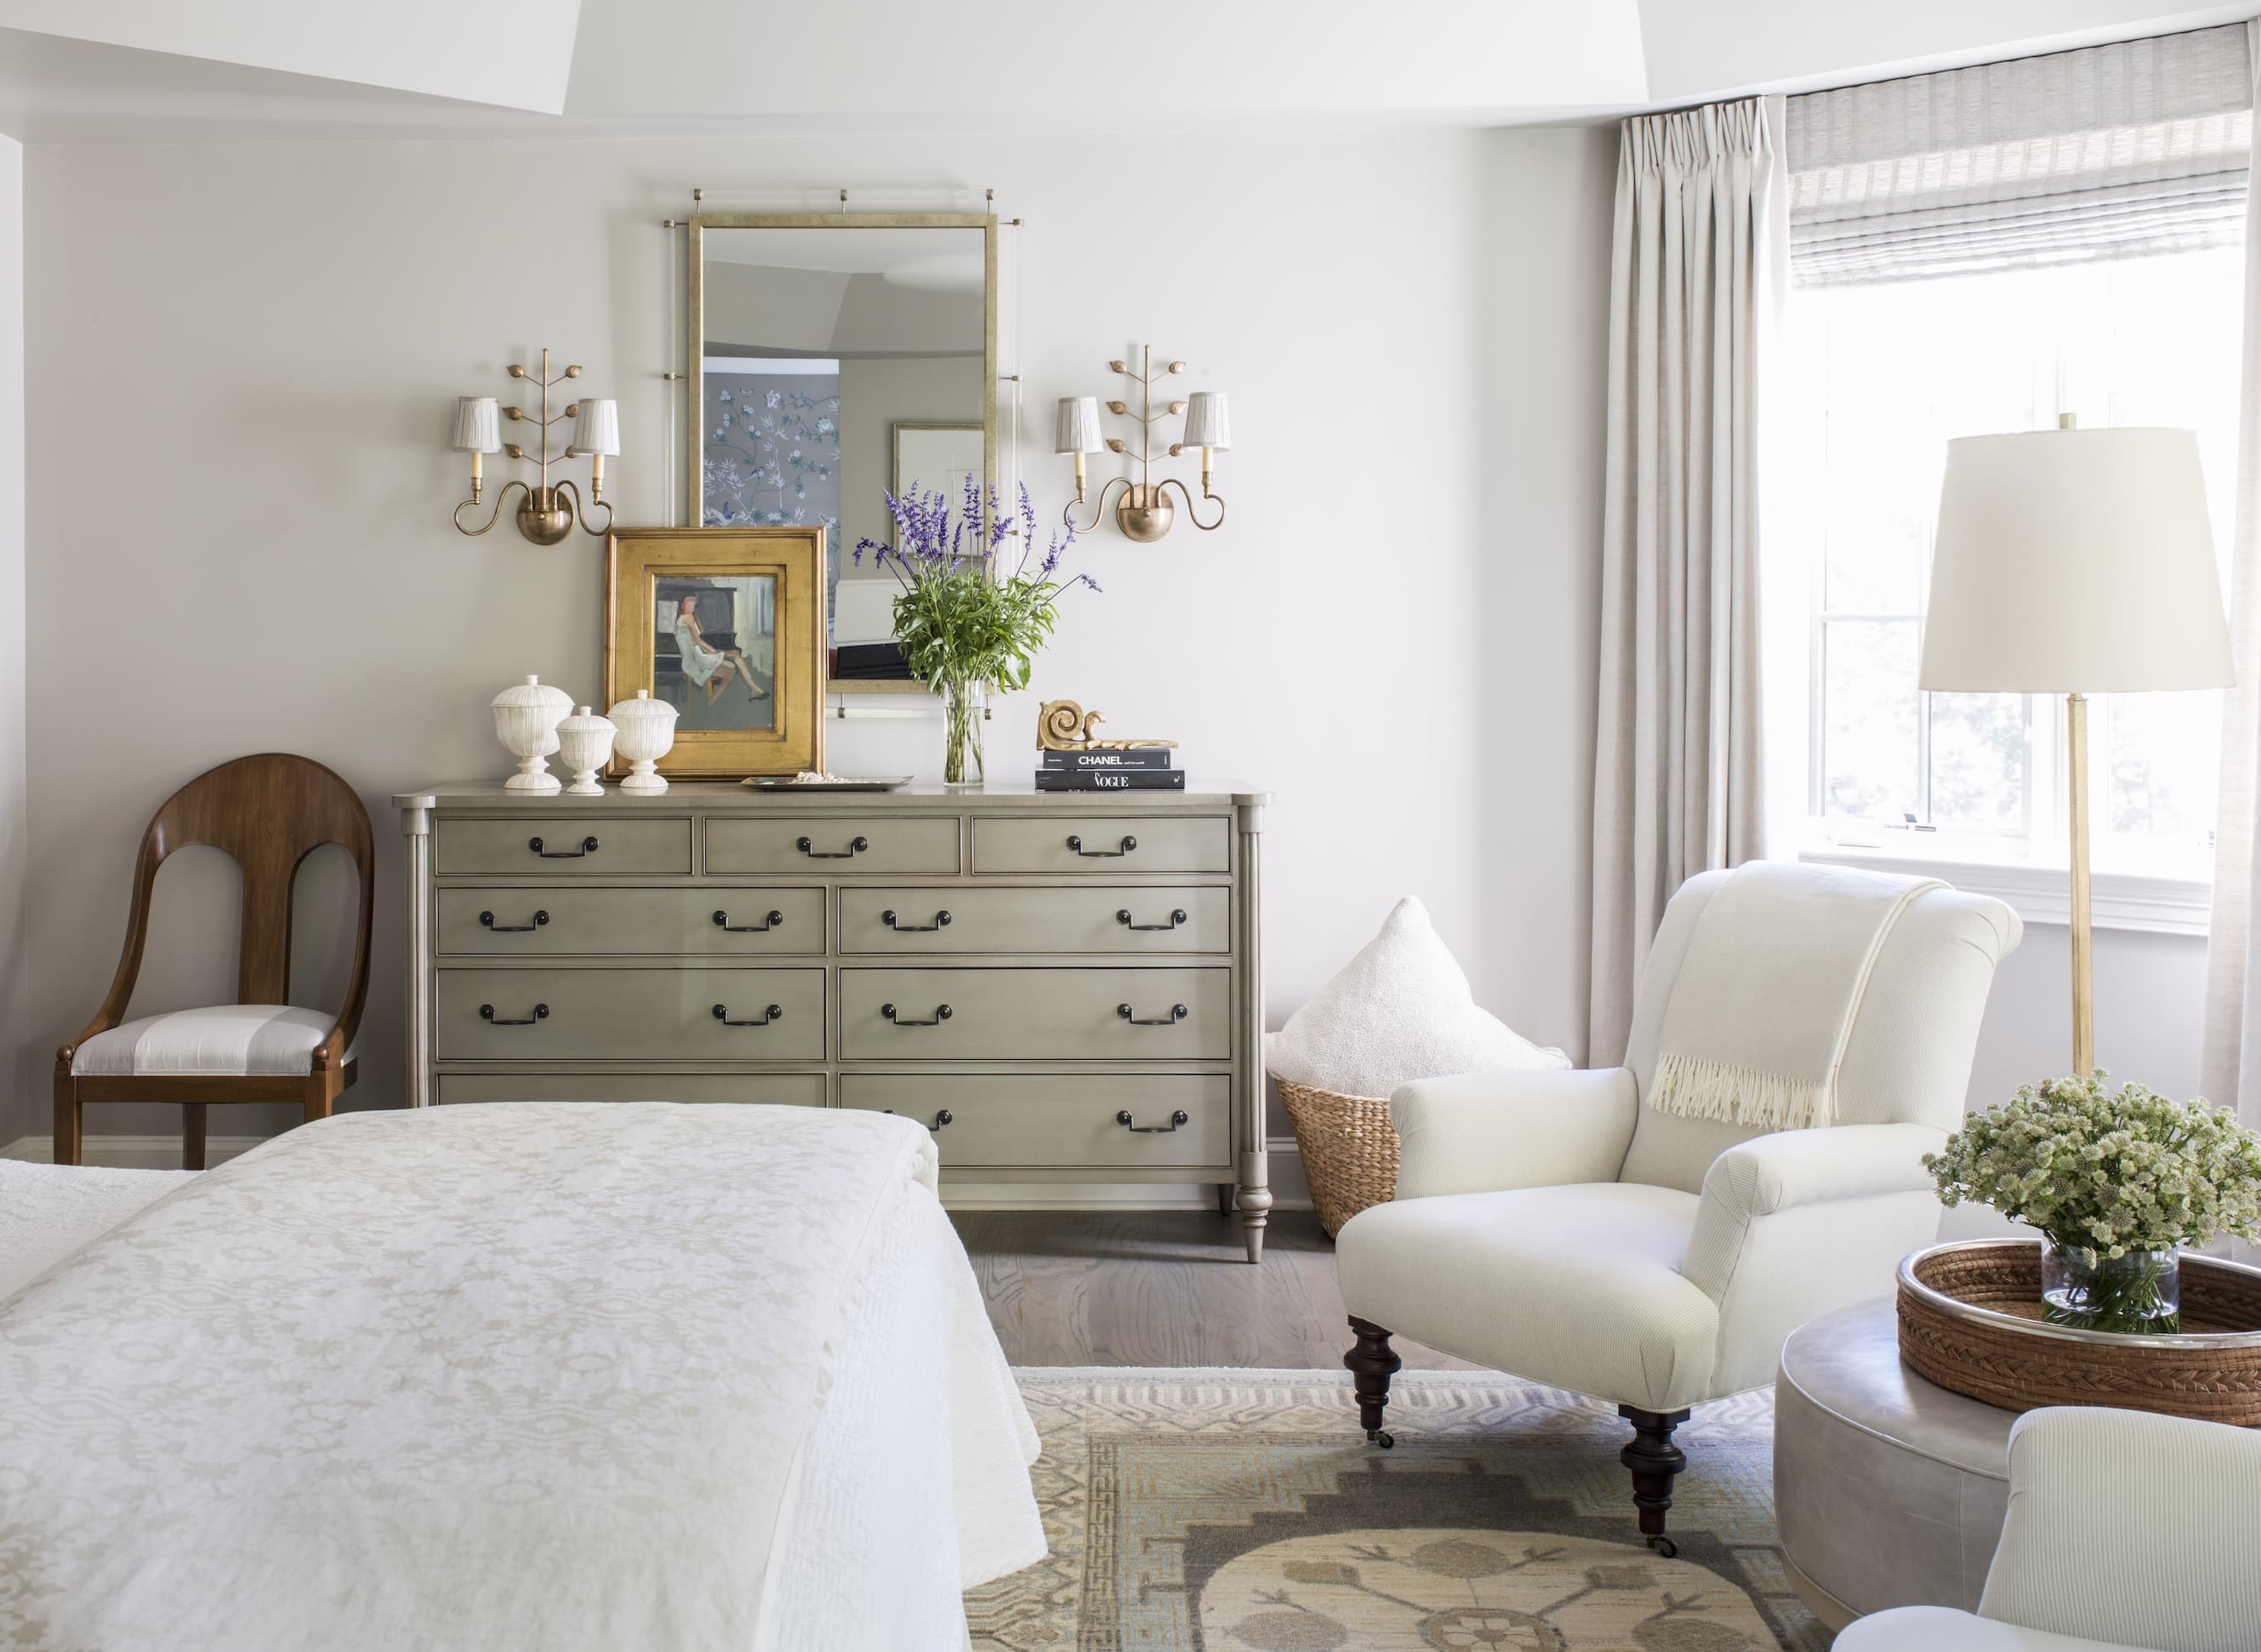 White lounge chair and dresser in a bedroom.